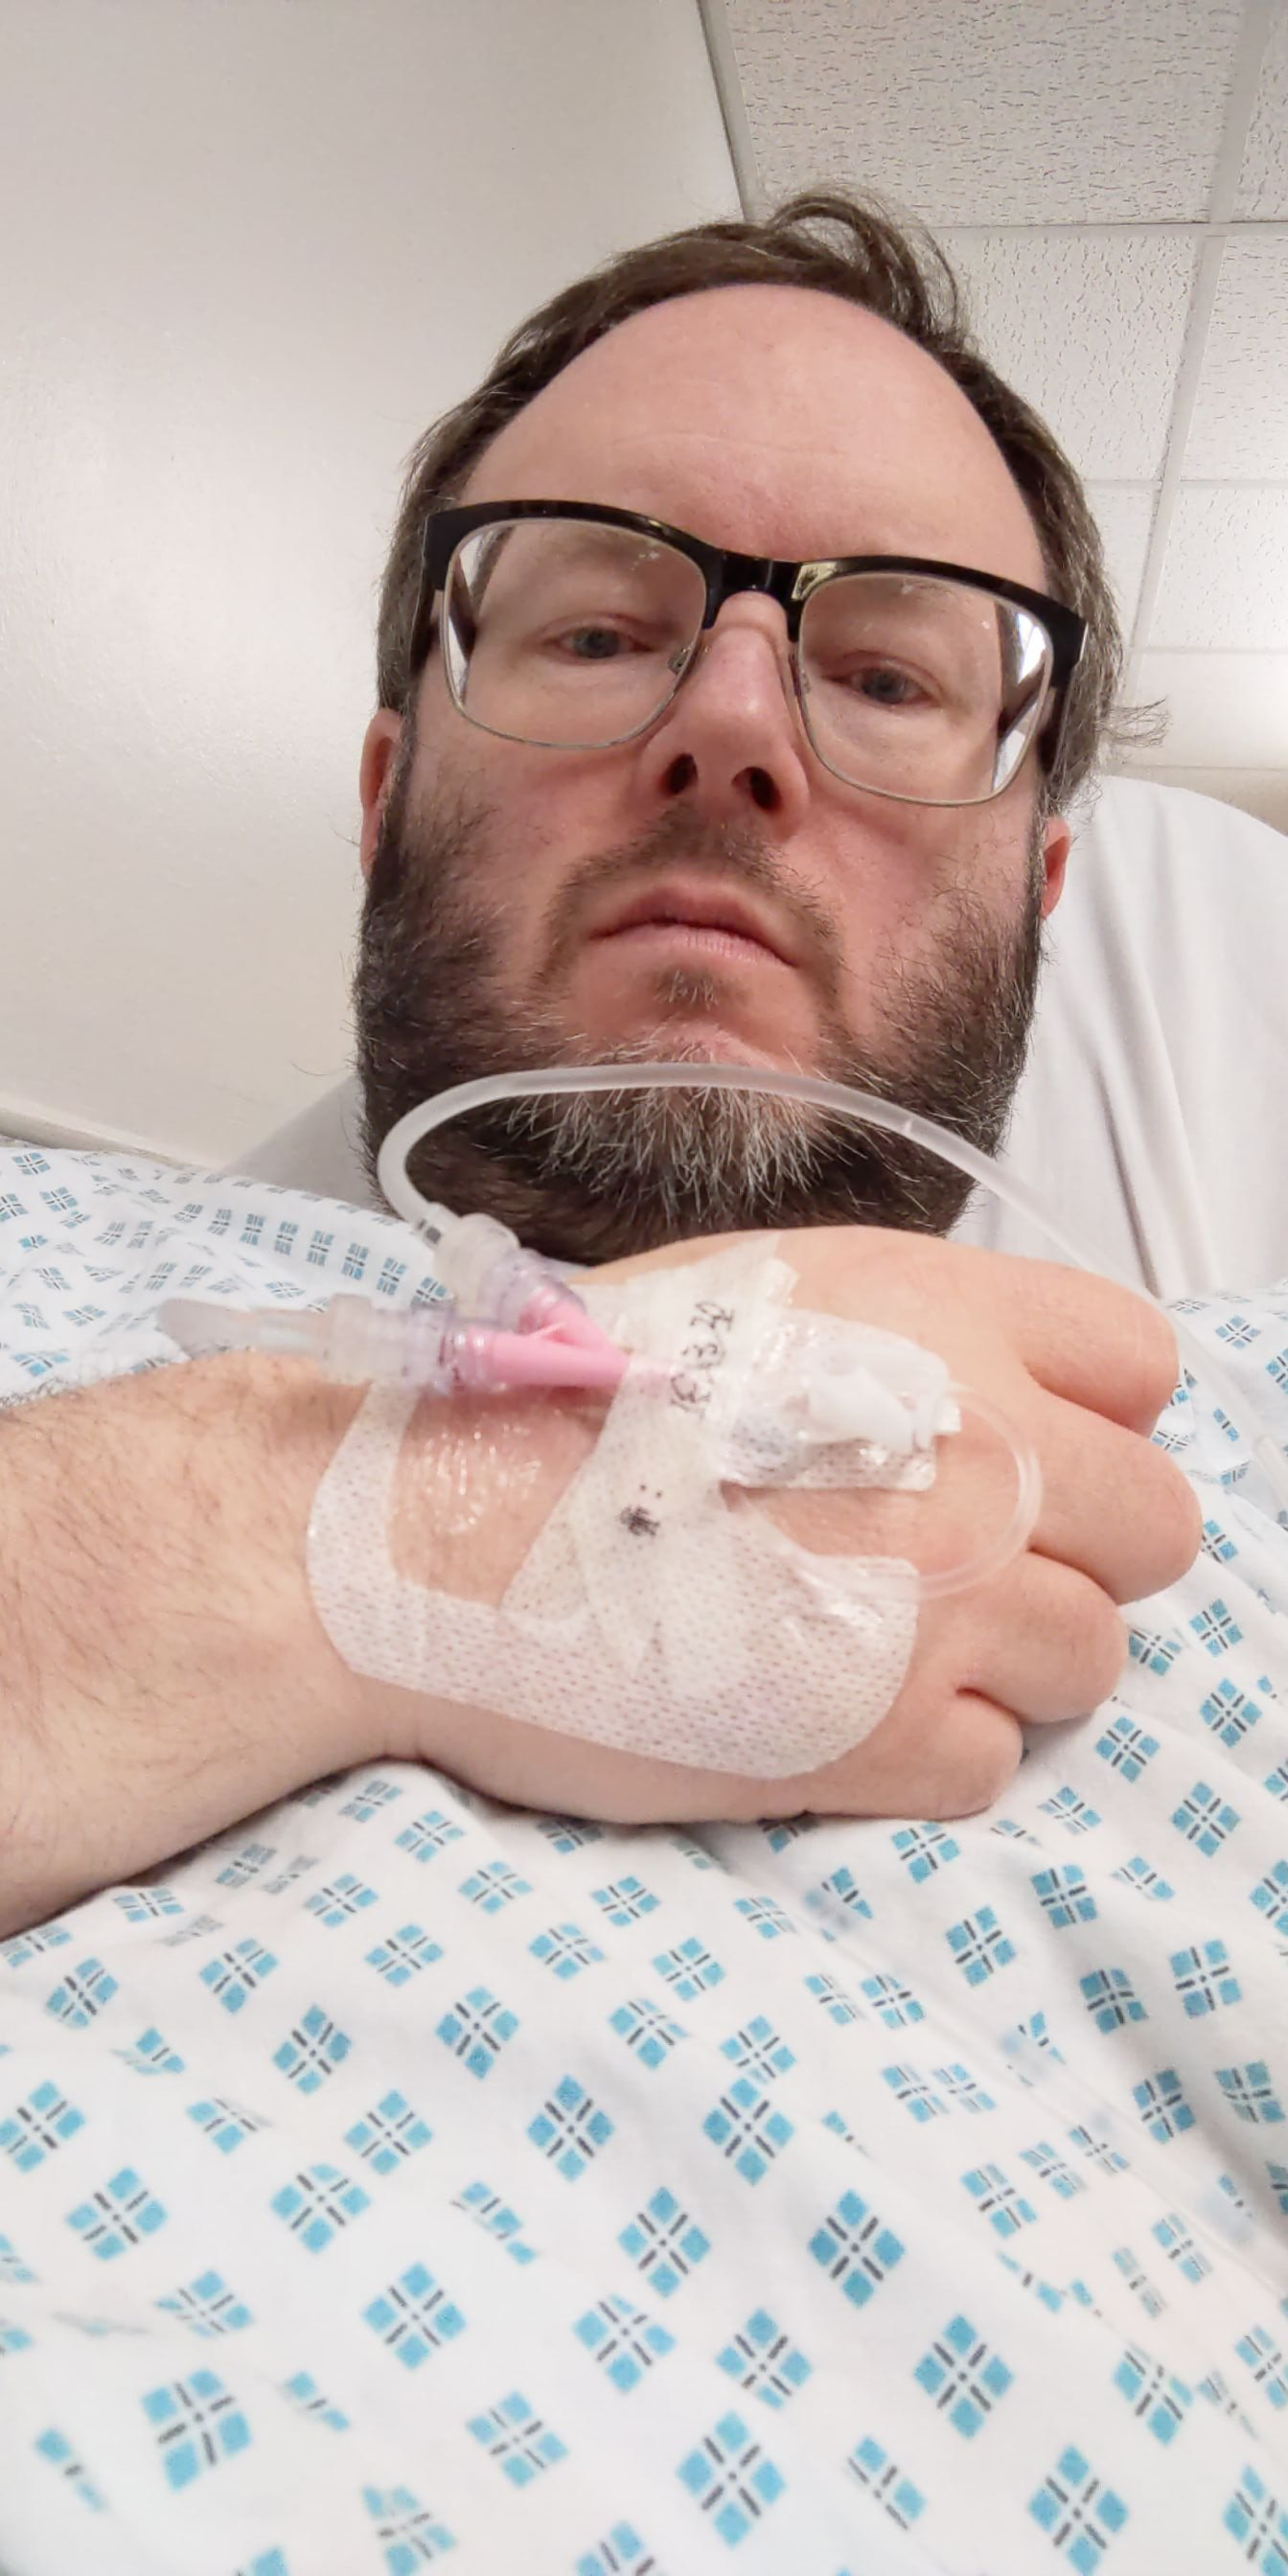 Me in hospital with a canula for the drip March 2020 (photo: James Kemp)